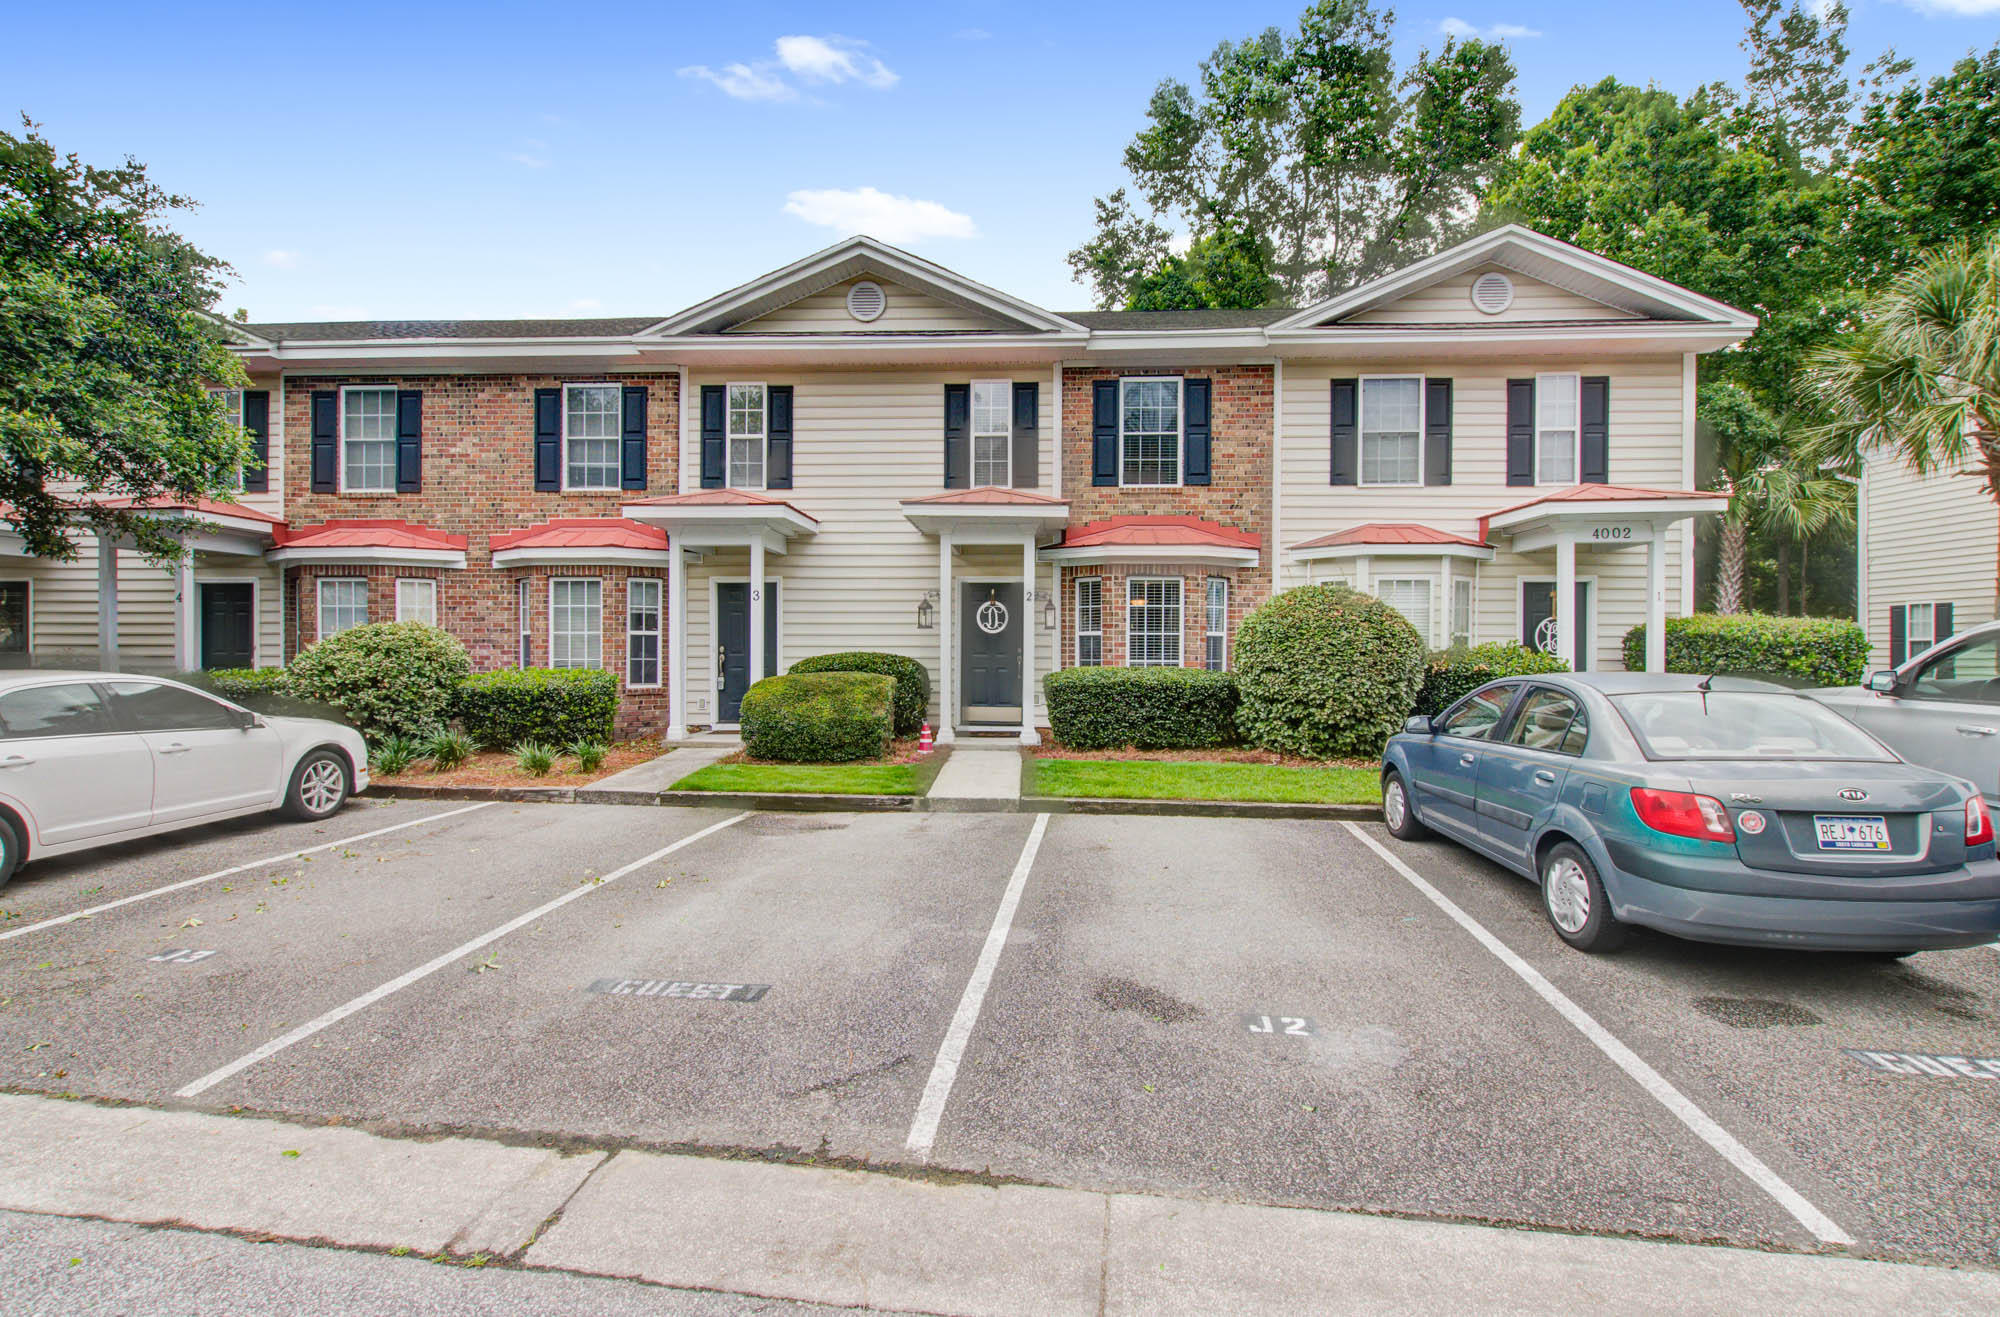 Radcliffe Place Homes For Sale - 4002 Radcliffe, Charleston, SC - 23